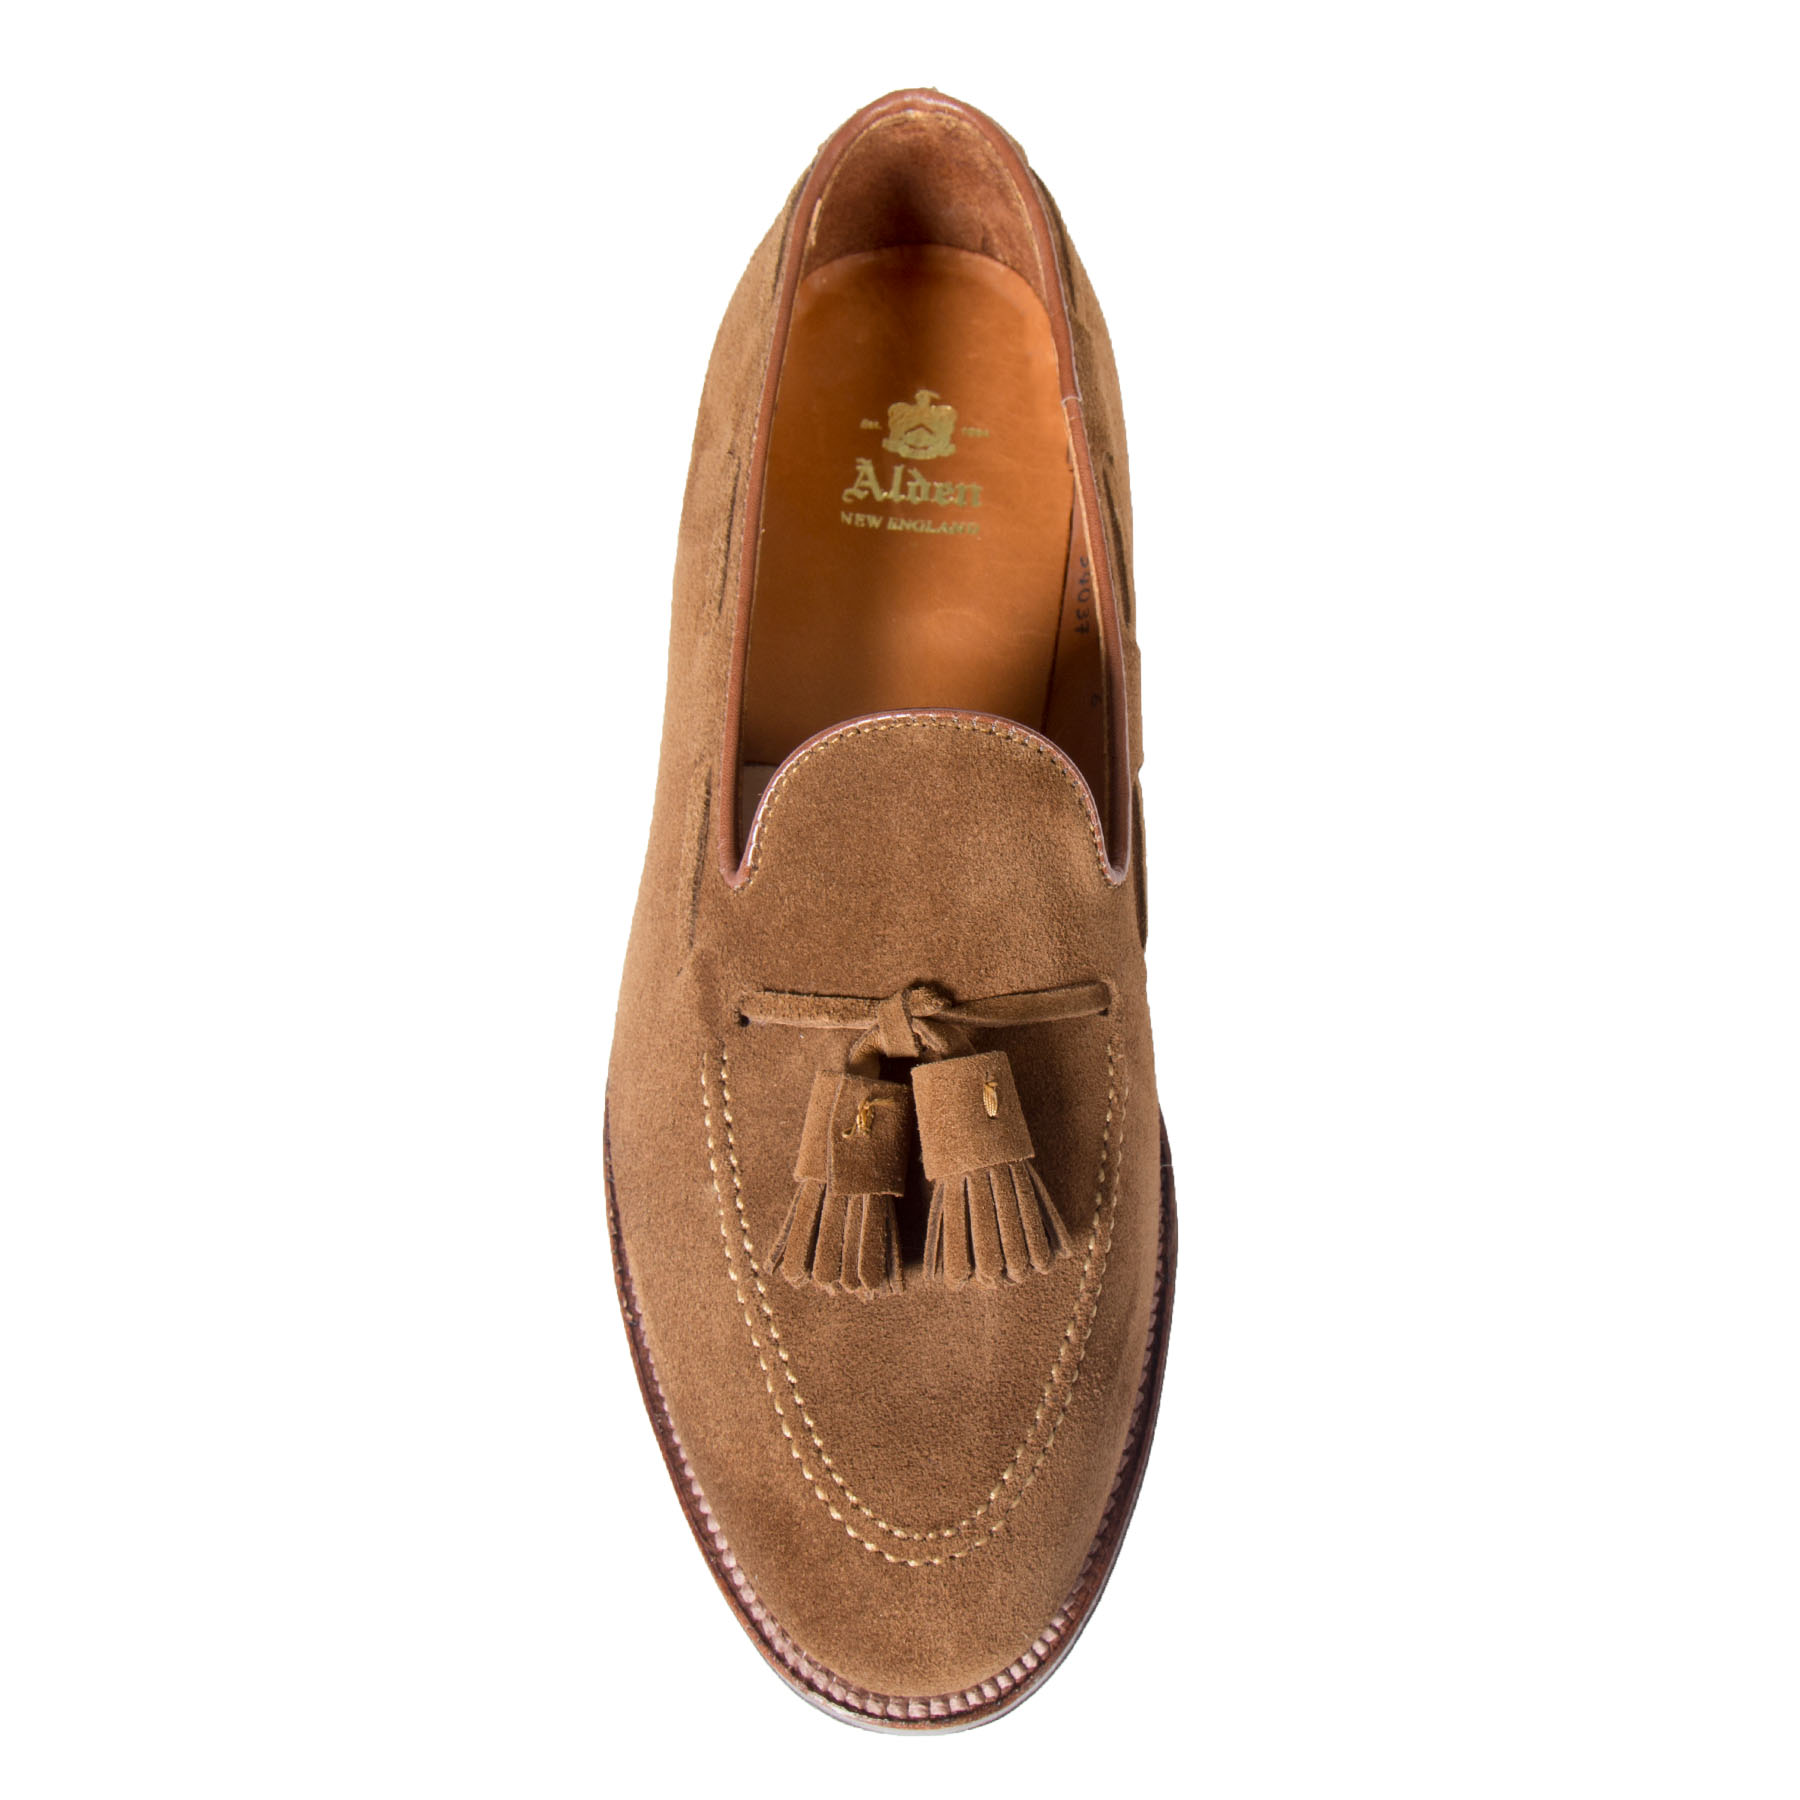 fe141c4f77c Tassel LoaferSnuff Suede3403 – Alden Shoes Madison Avenue New York